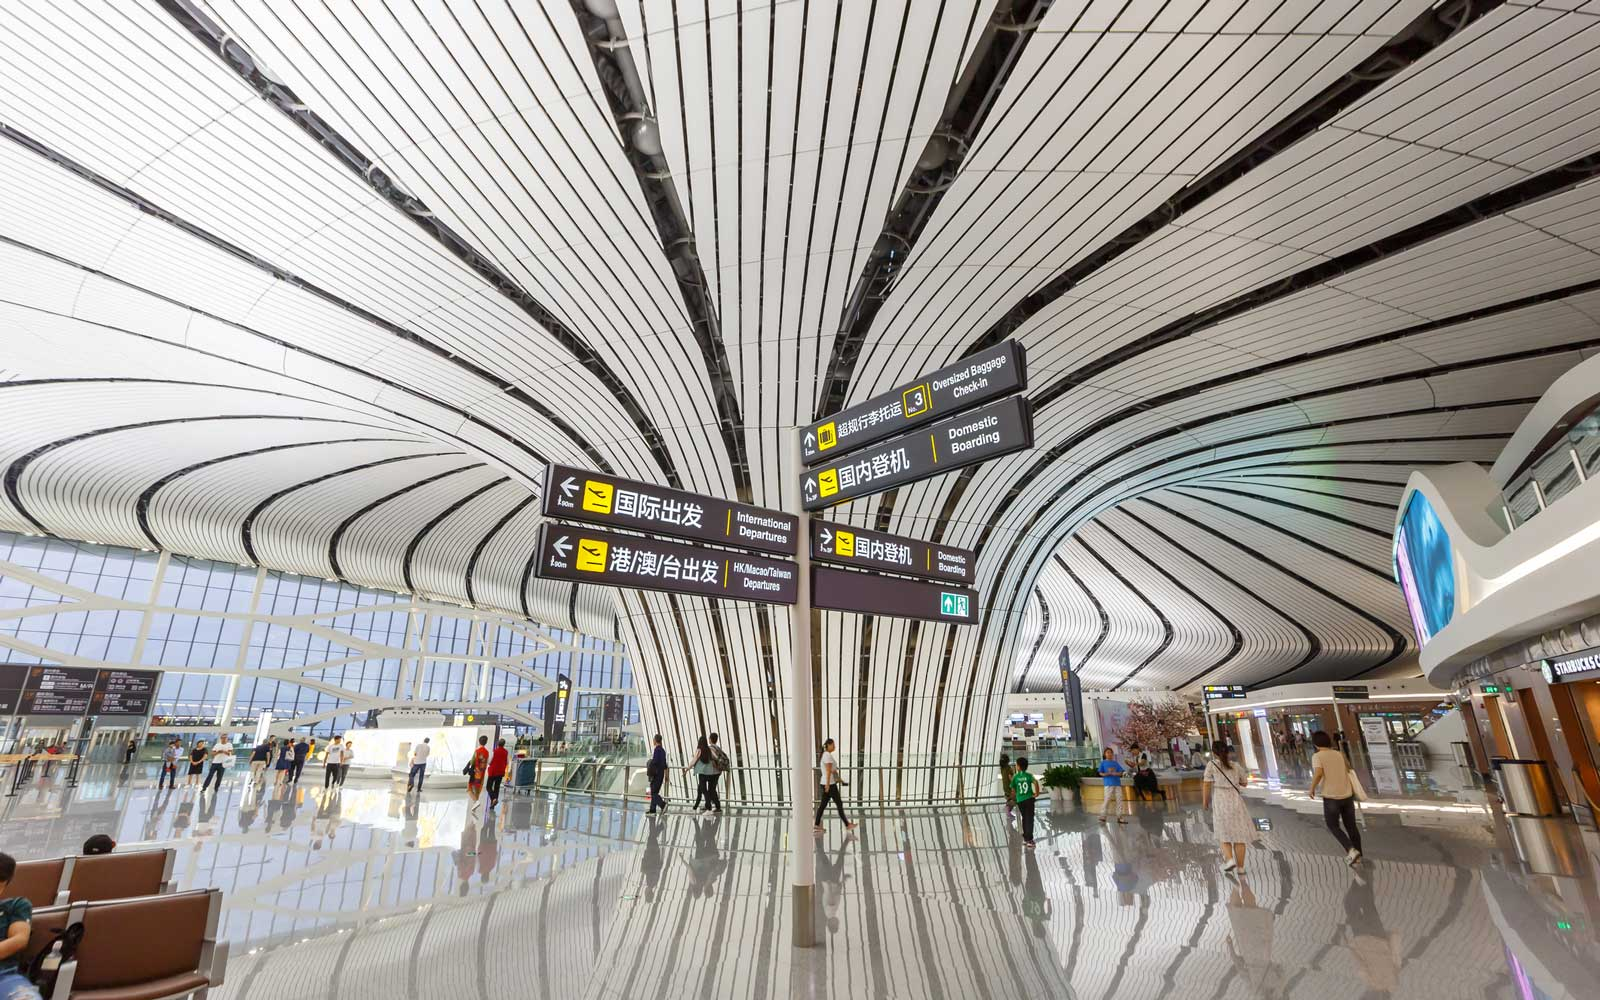 Beijing's Daxing International Airport